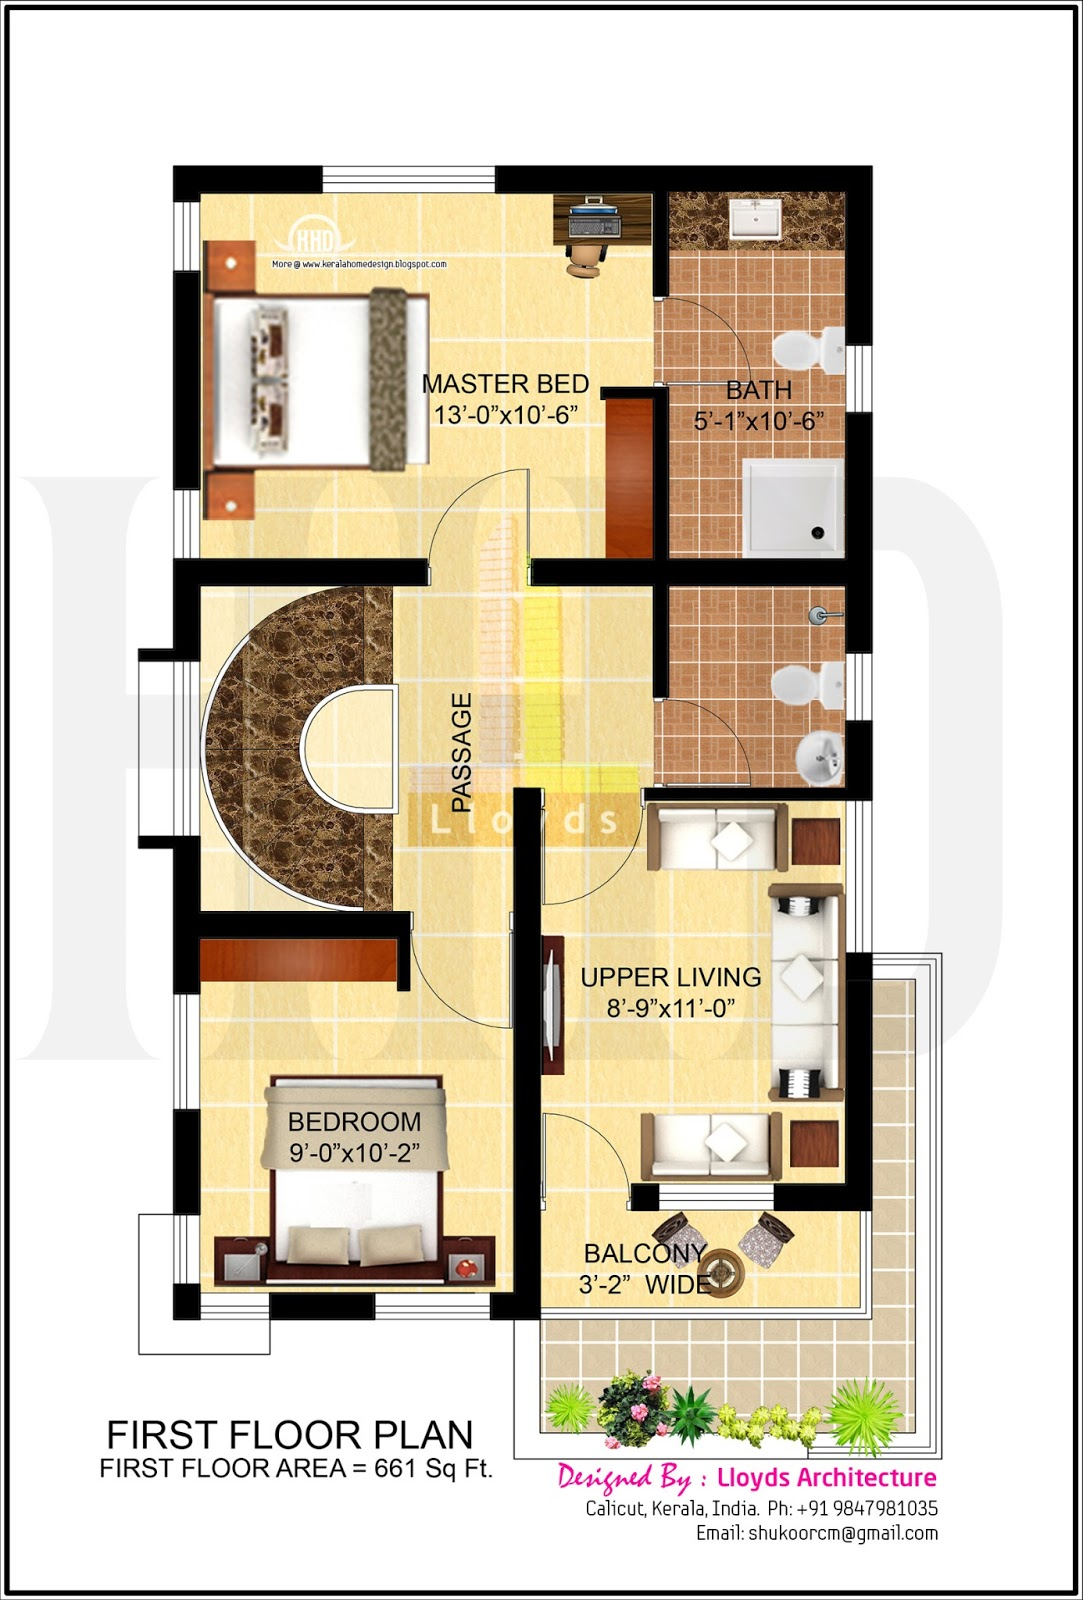 4 bedroom house plan in less than 3 cents kerala home for Home designs and floor plans